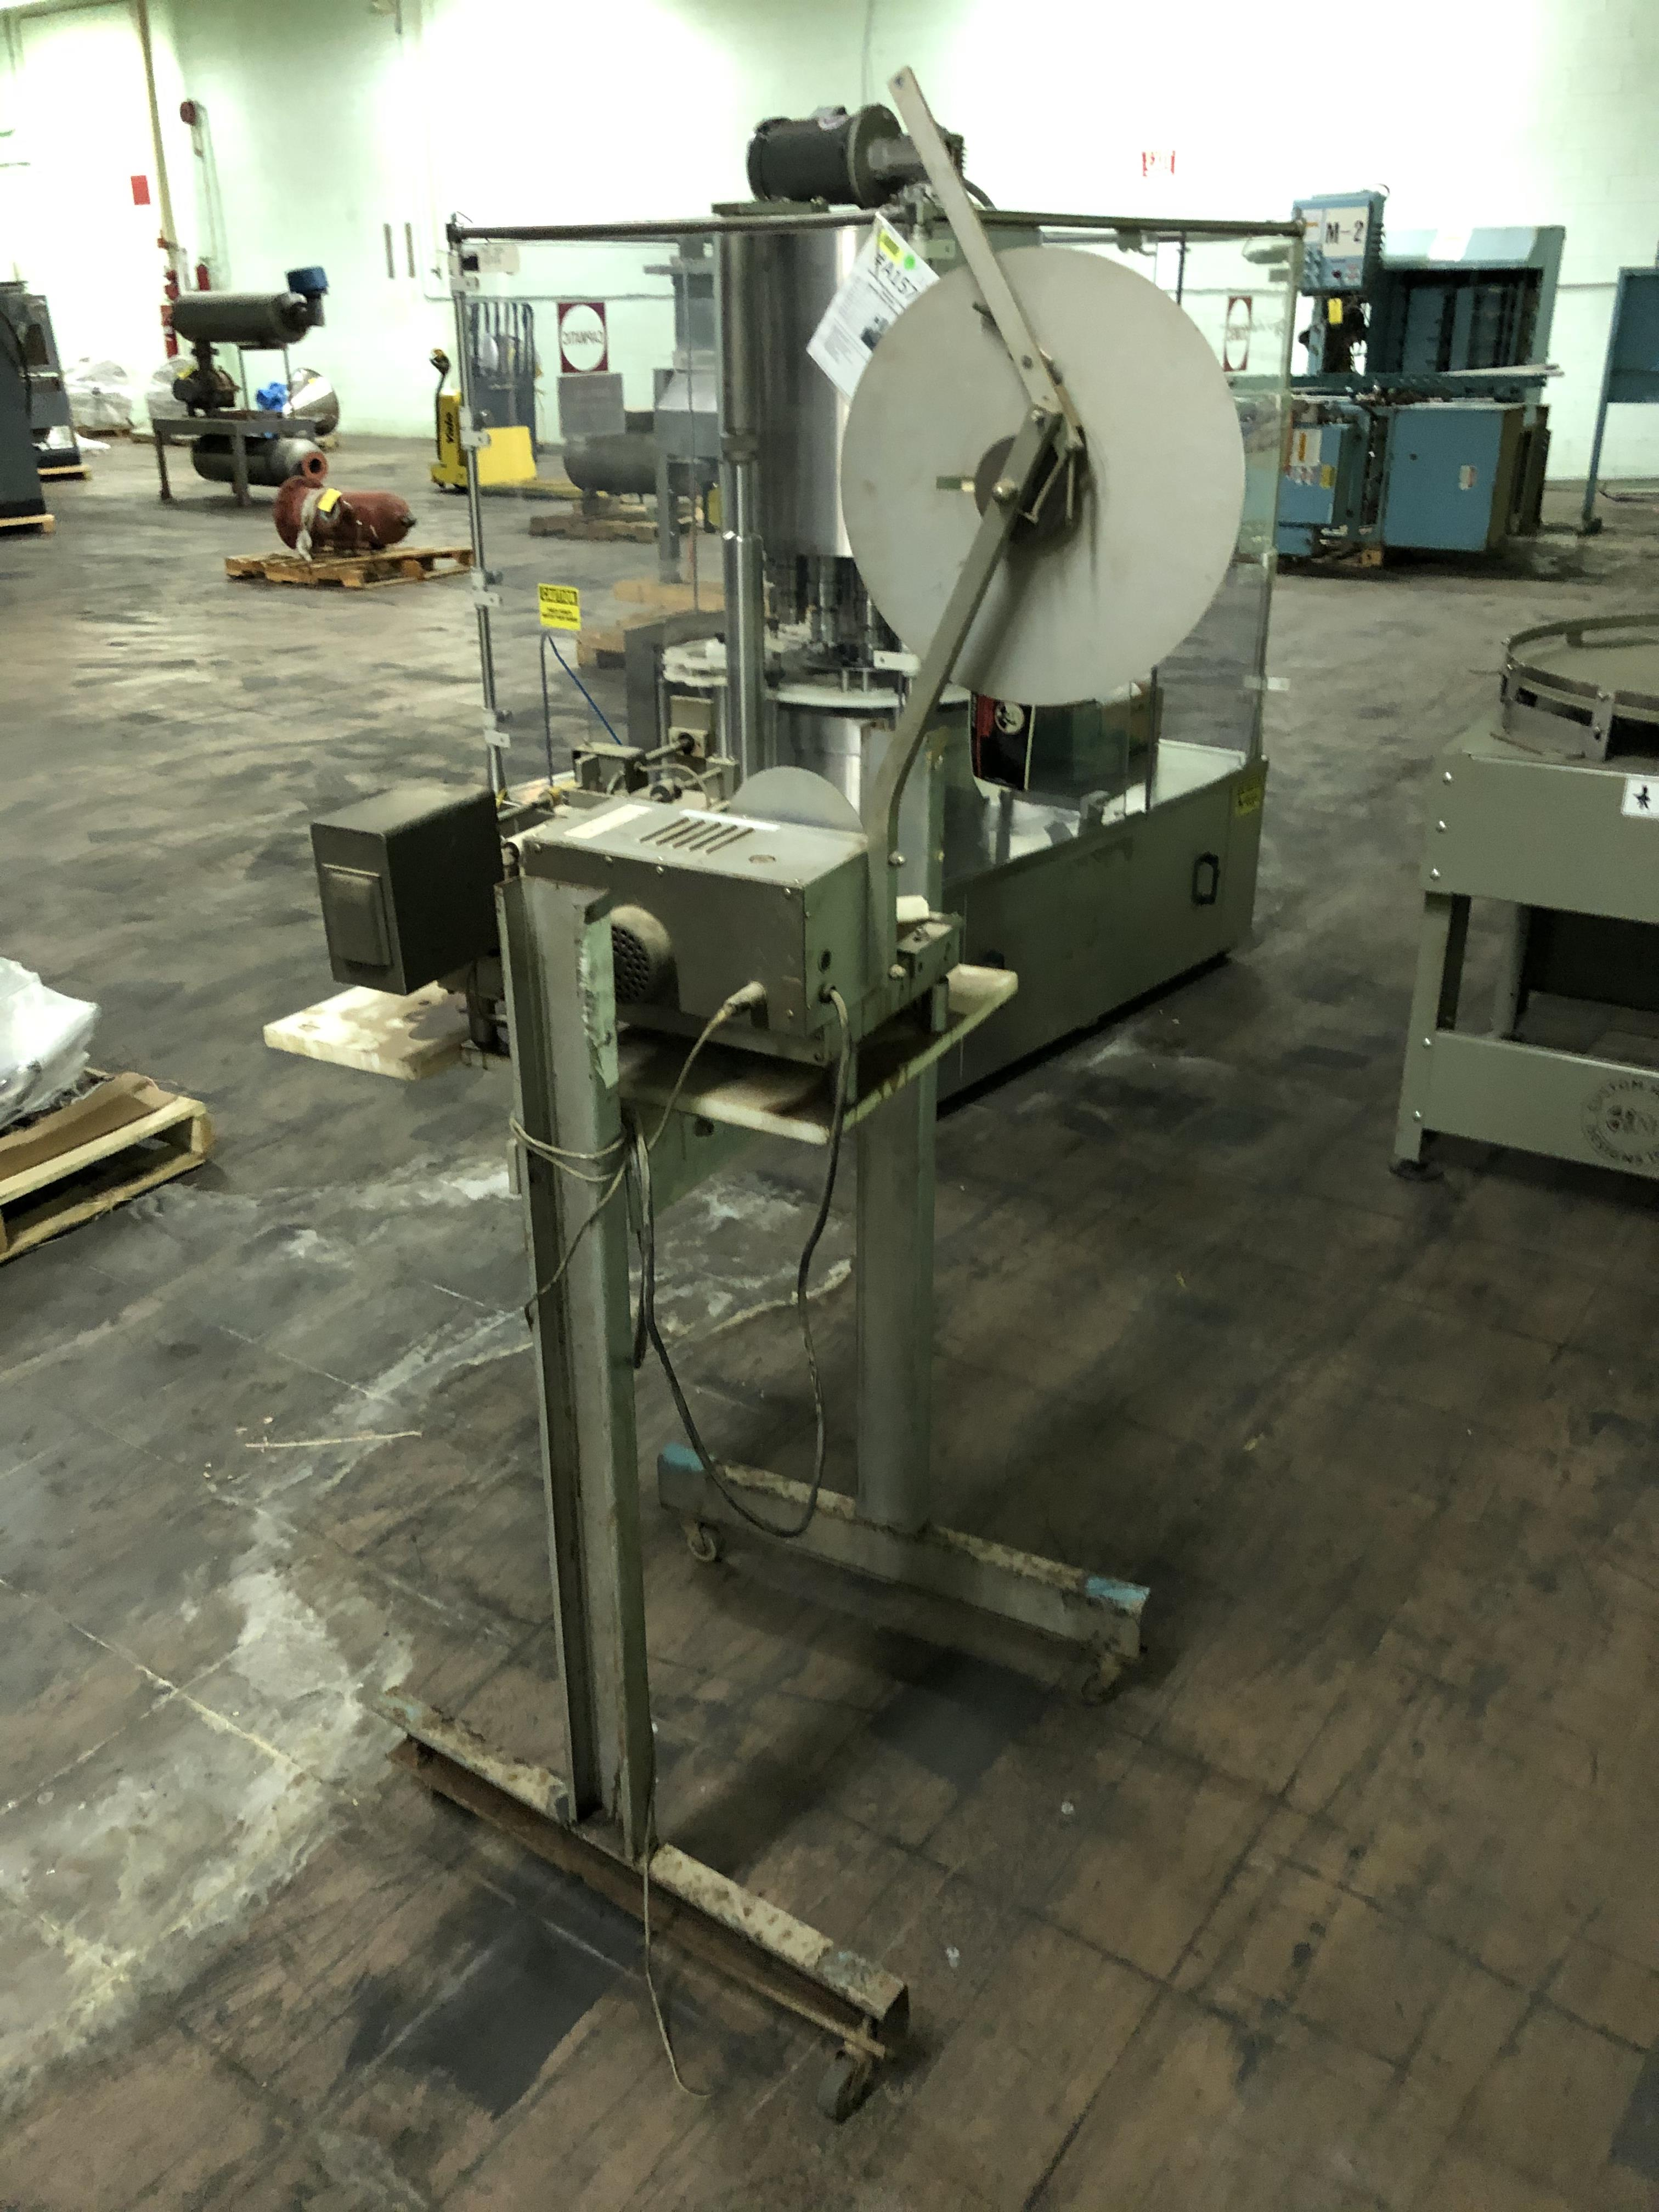 Label Machine on Stand, RIGGING FEE - $50 - Image 3 of 3